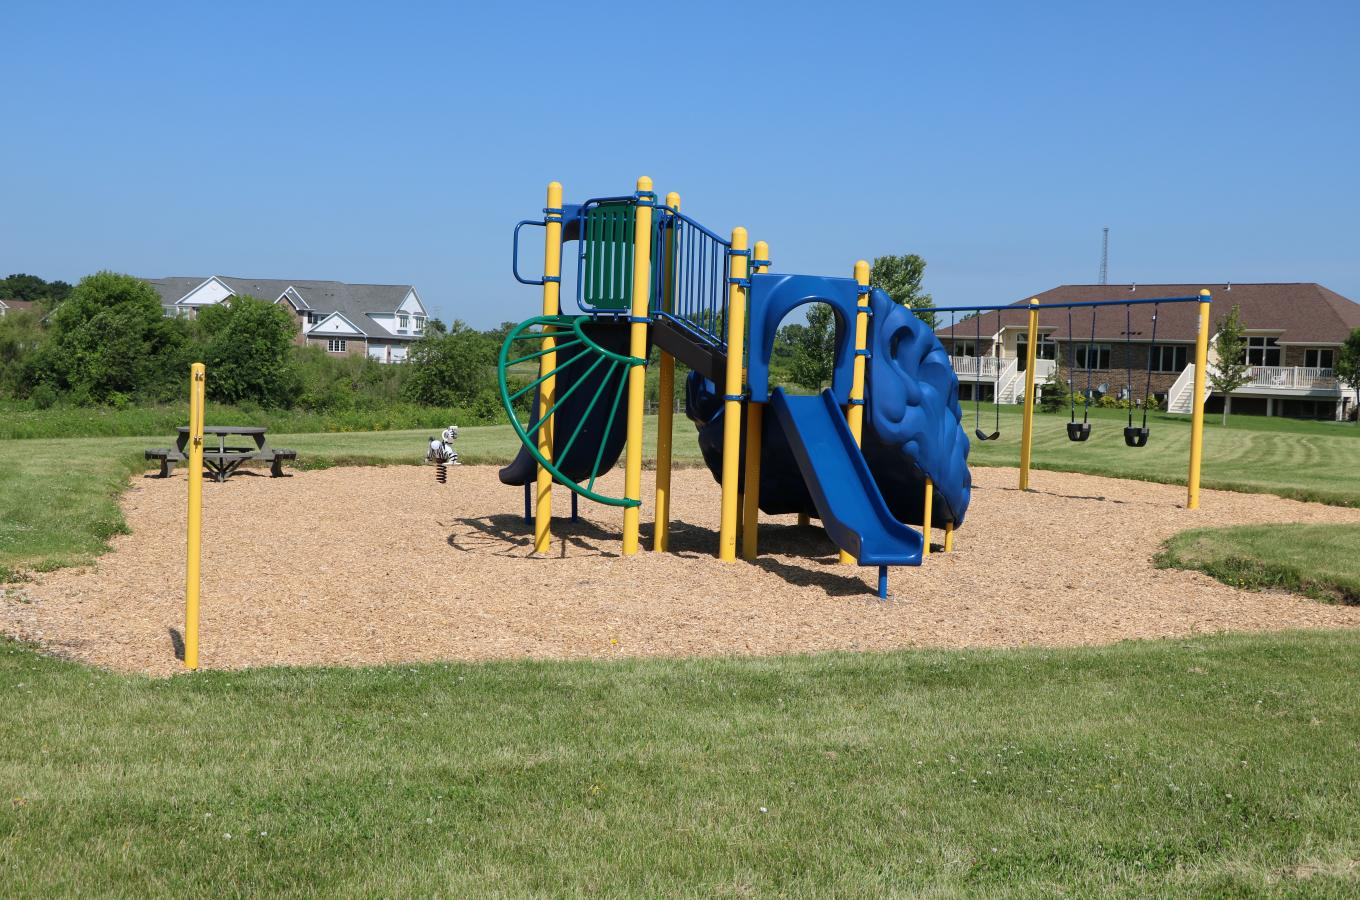 2018 Creekside Park Playground equipment V Pic_6988